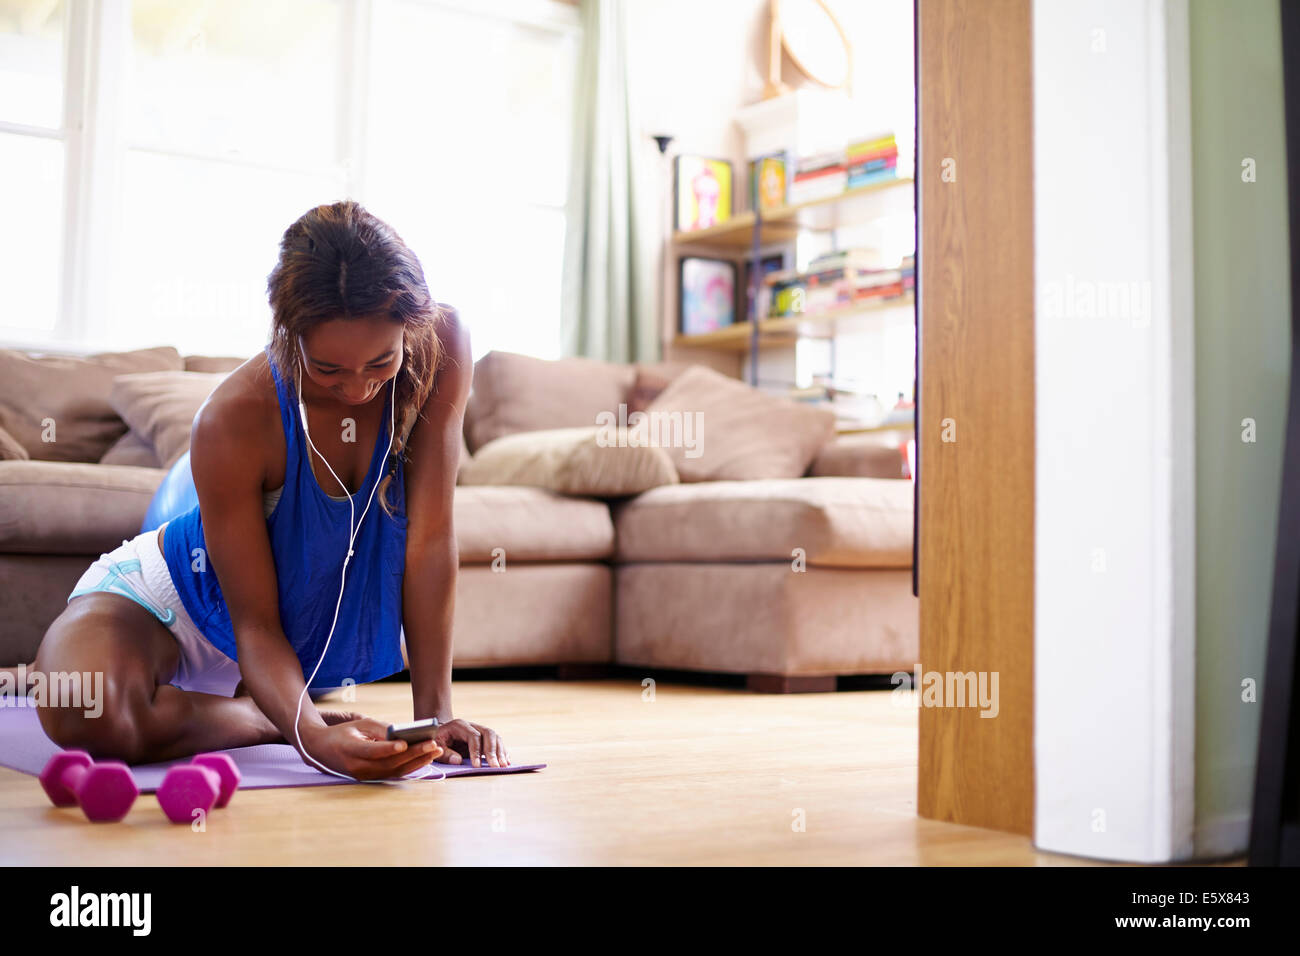 Young woman exercising on sitting room floor whilst looking at smartphone Stock Photo